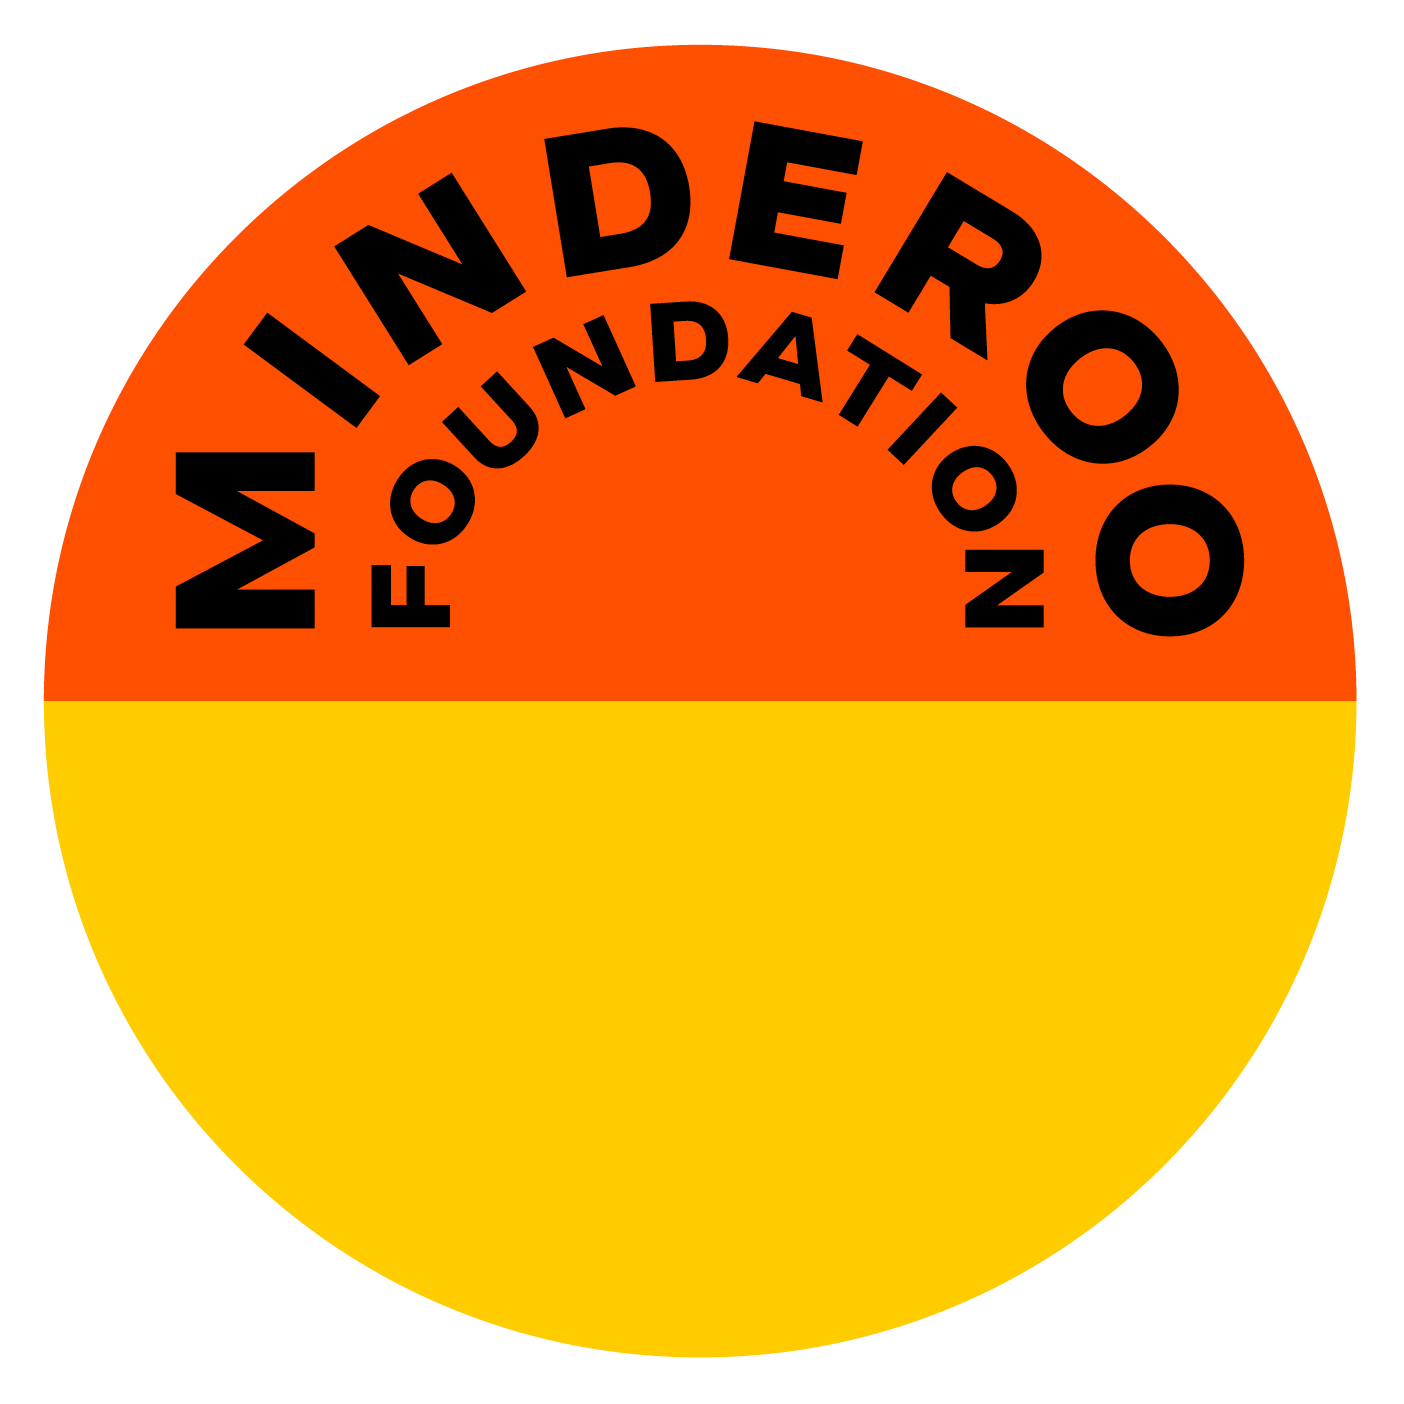 New Logo and Identity for Minderoo Foundation by Re